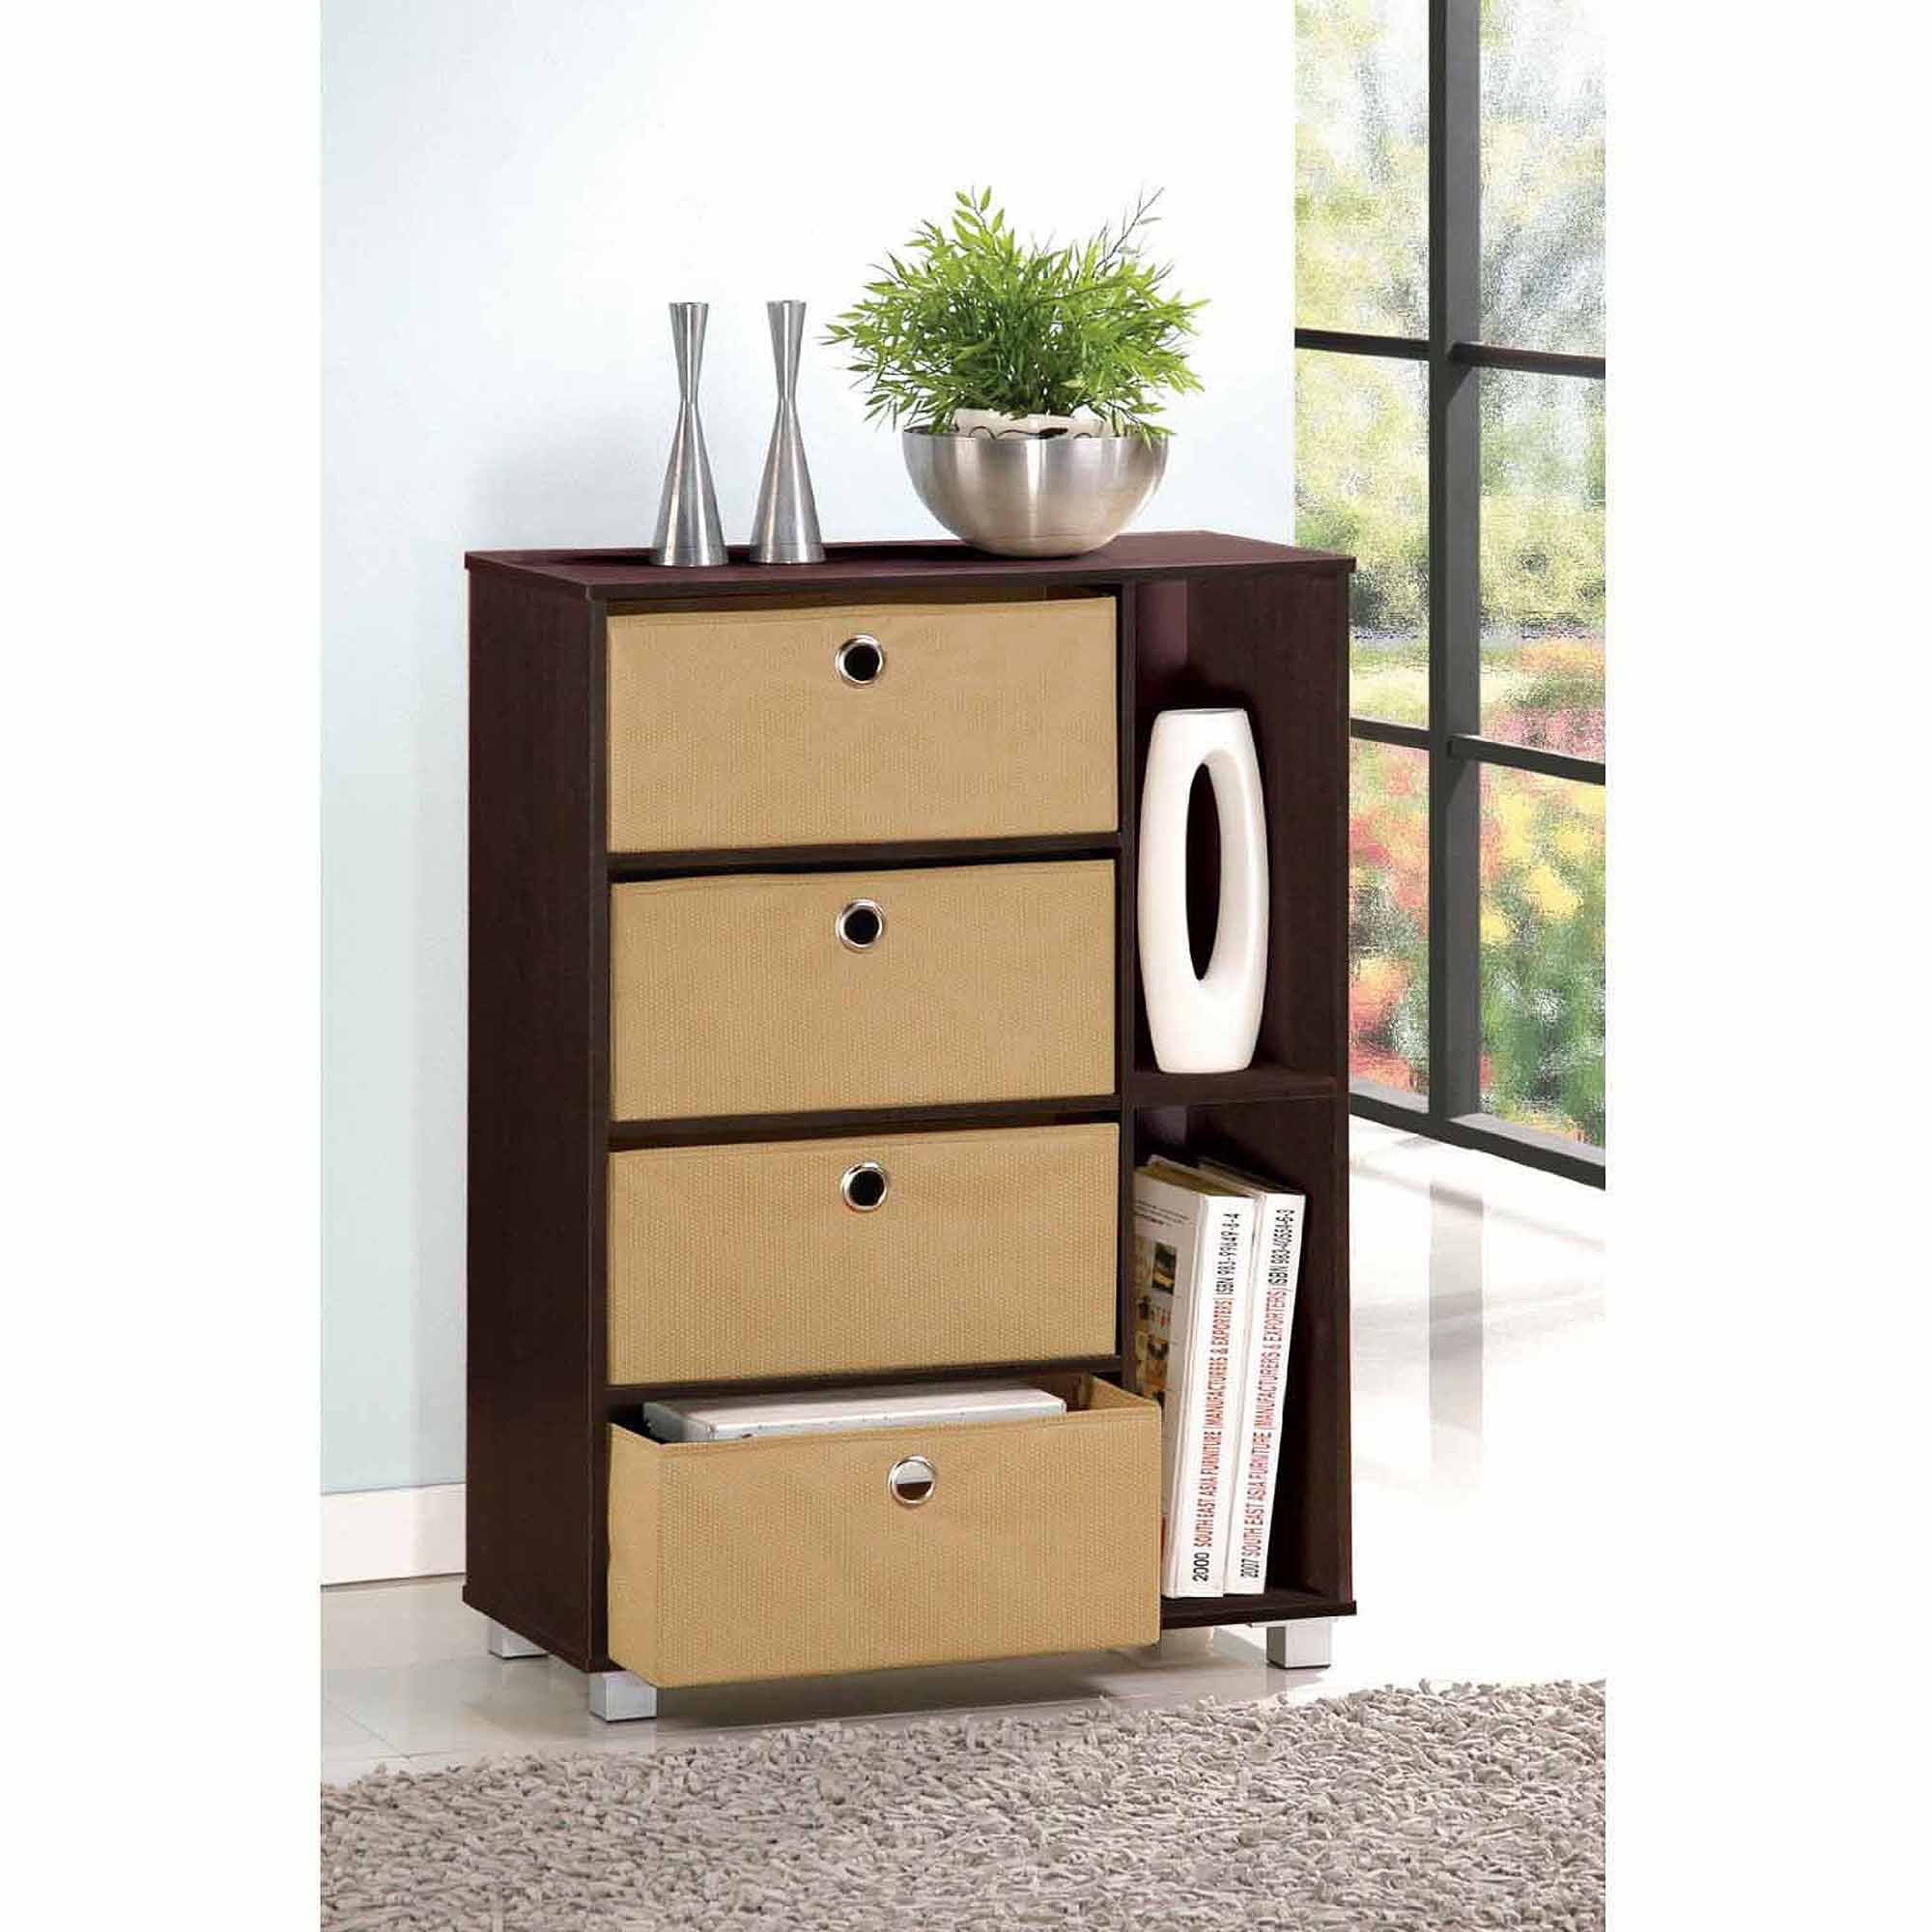 cabinets unit with as that impressive and open narrow resort for chest your drawers small charming bathroom shelves shelving look storage baskets cabinet ideas